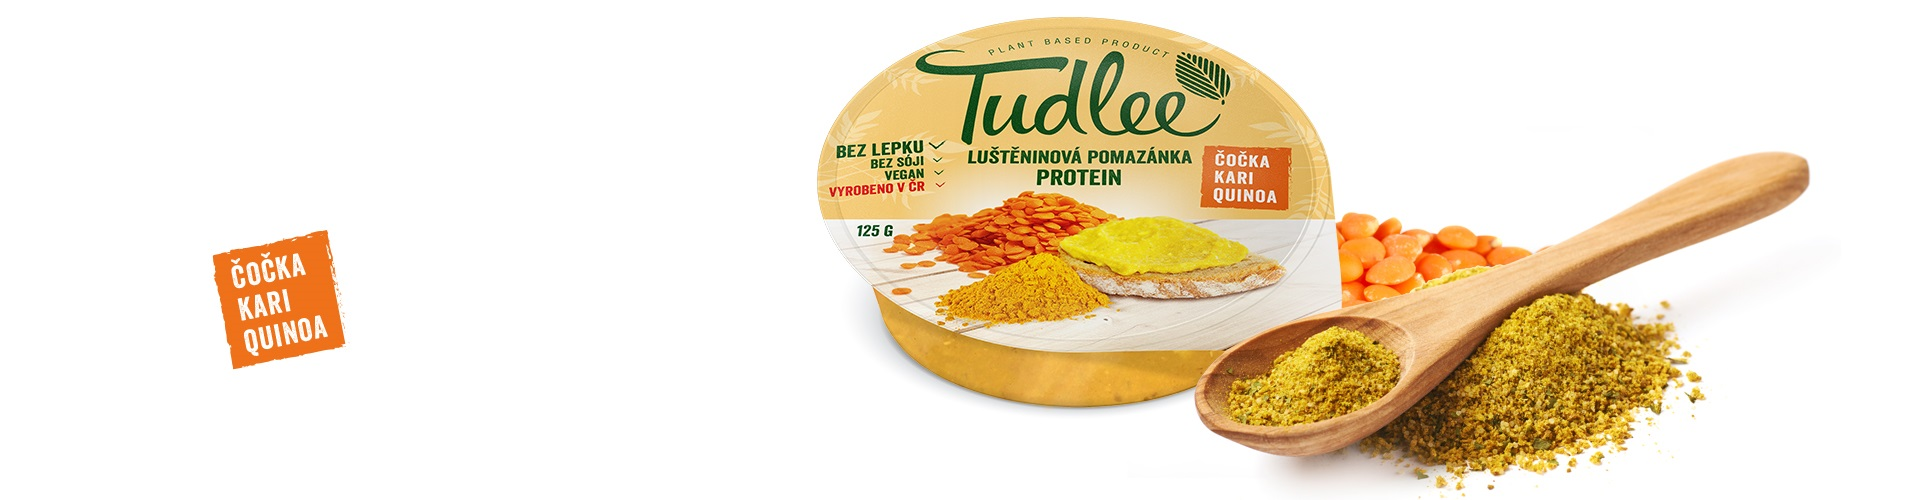 Tudlee protein lens, quino and curry